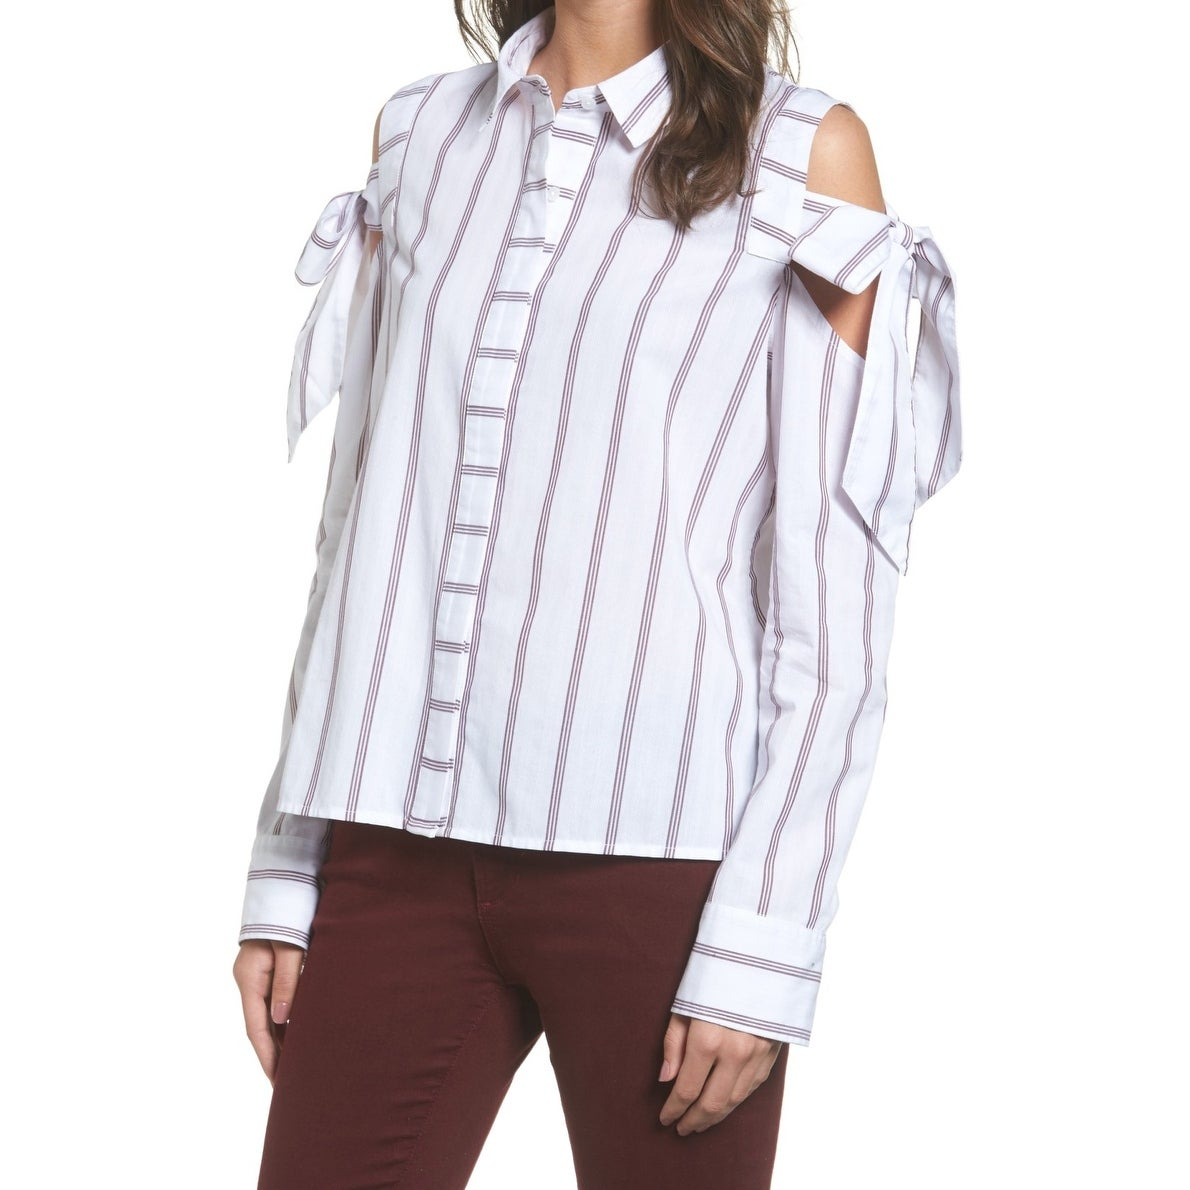 849e090bcf1c White Red Stripe Cold-Shoulder XXS Tie-Sleeve Button Down Shirt - On Sale -  Free Shipping On Orders Over $45 - Overstock - 22397778